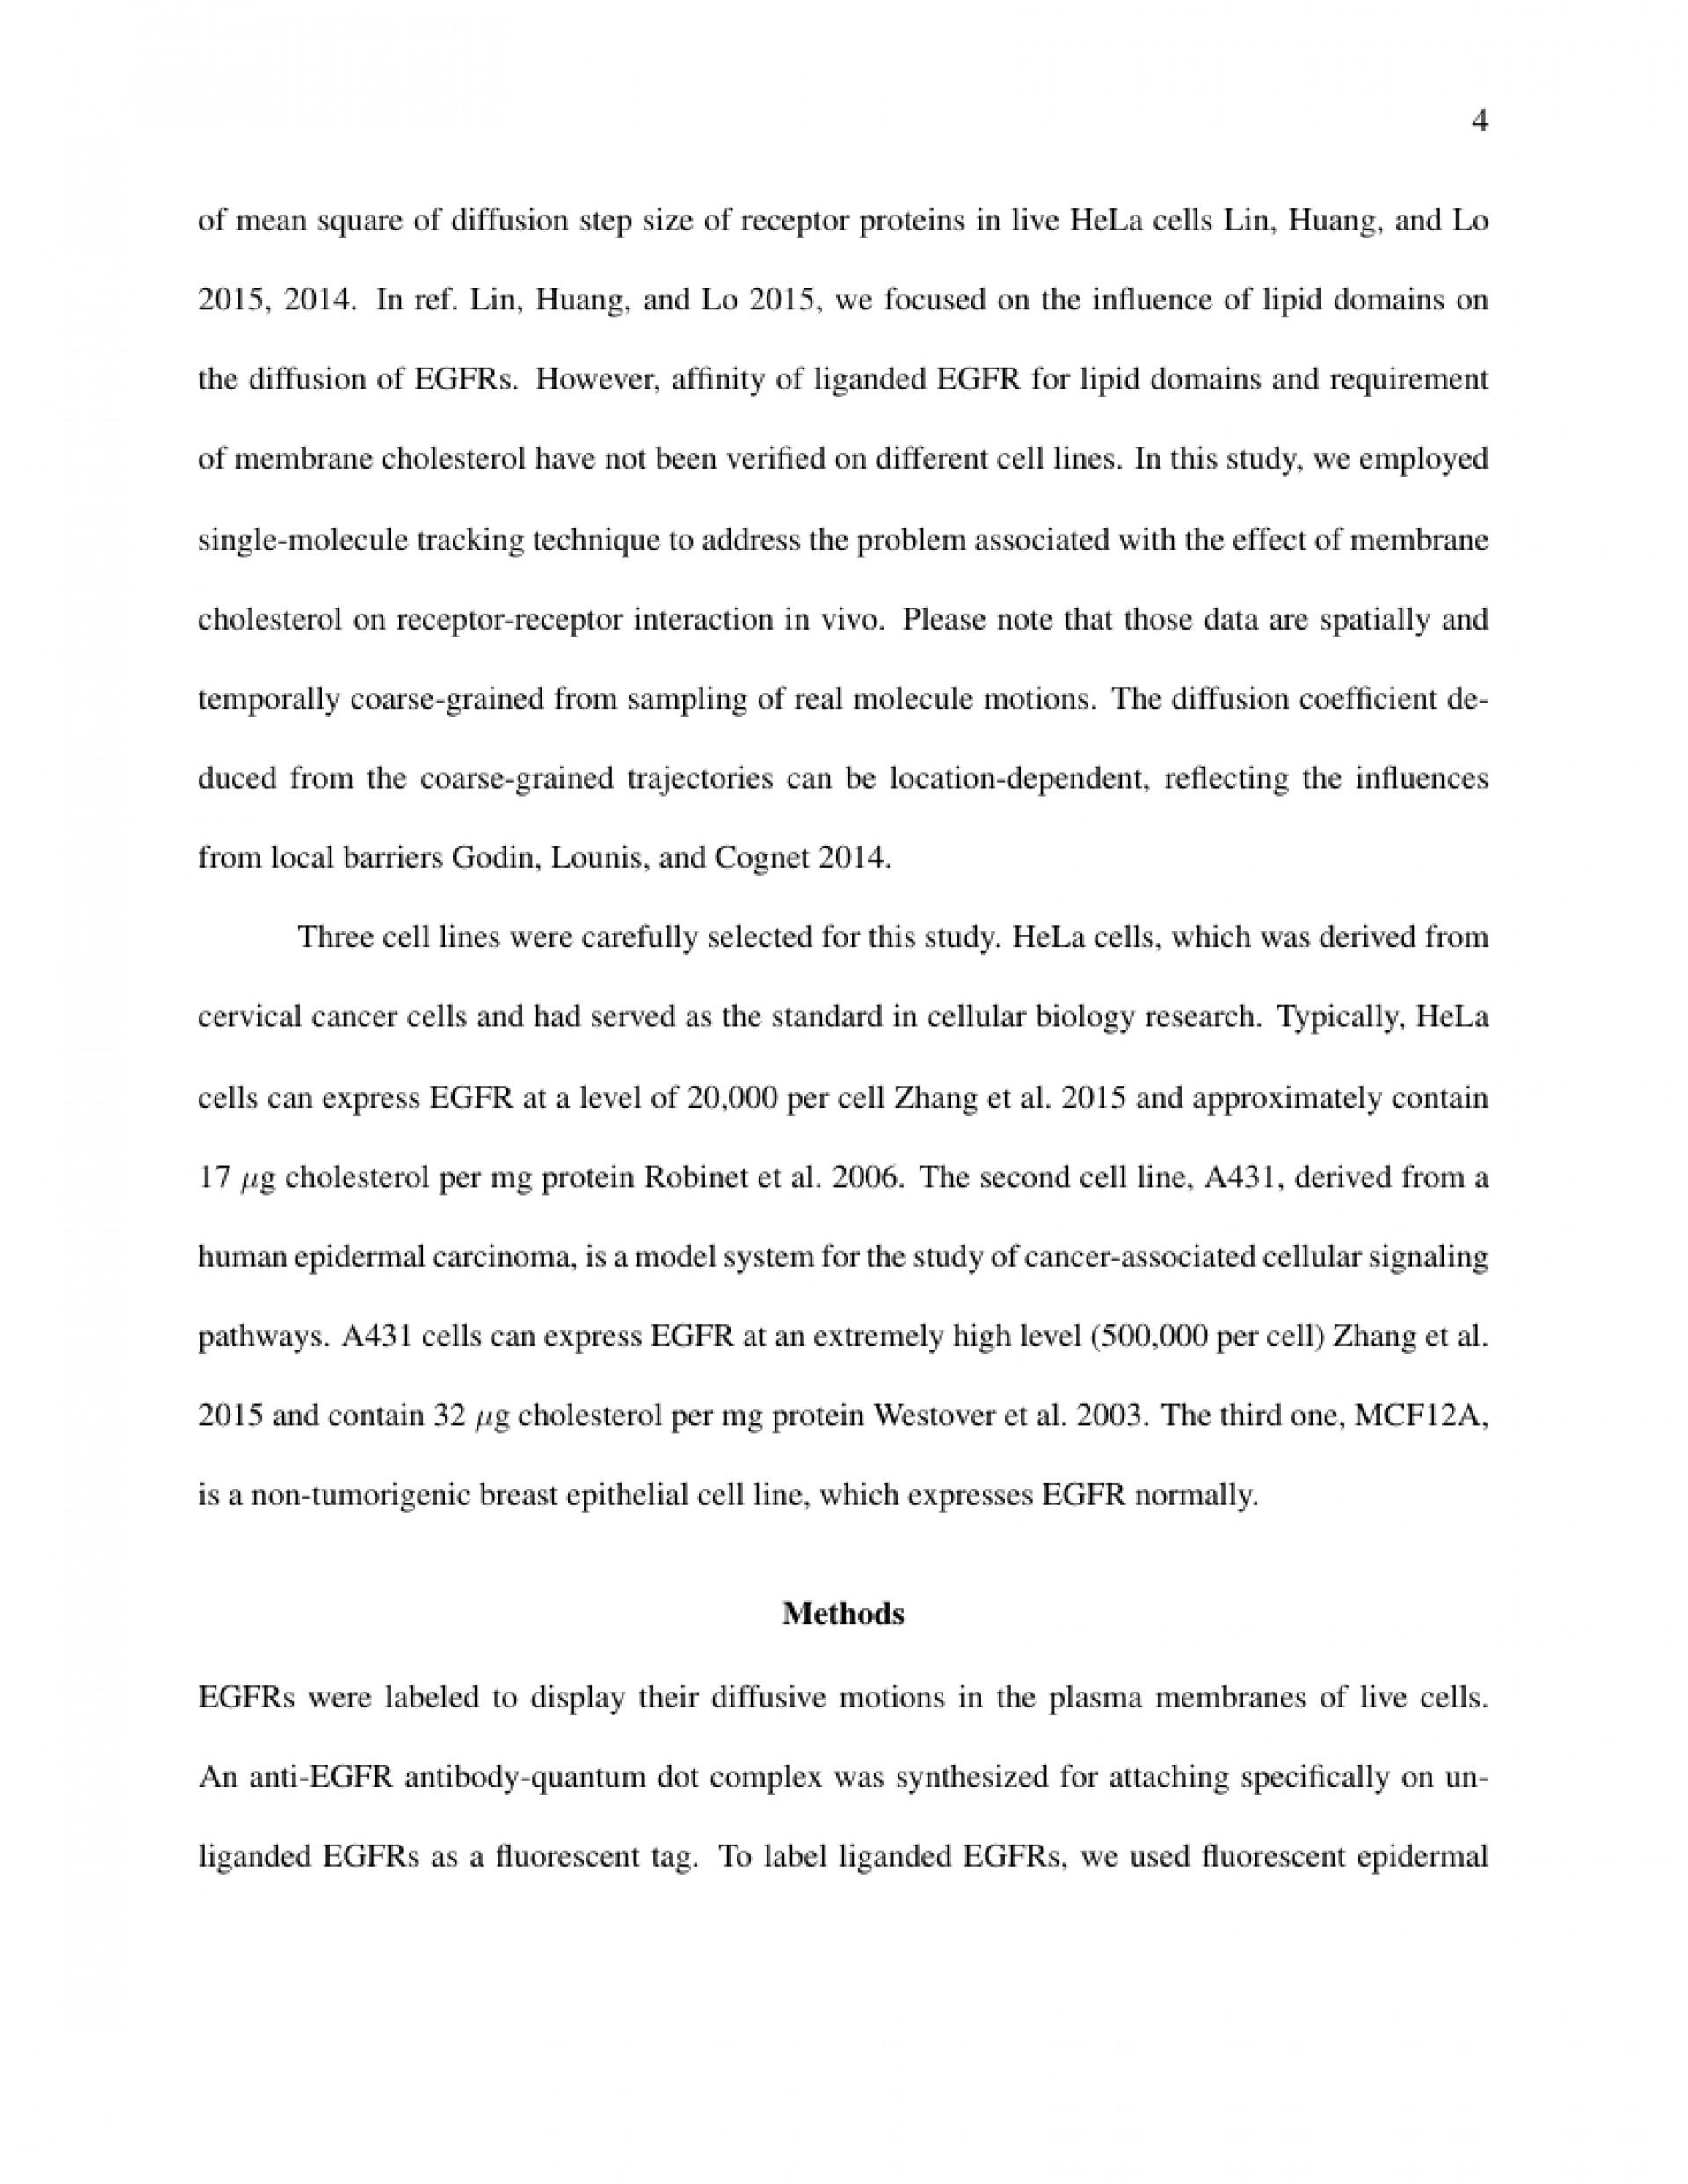 003 Format Of Research Paper Article Astounding A Example Mla Works Cited Sample Outline In Apa Style 1920